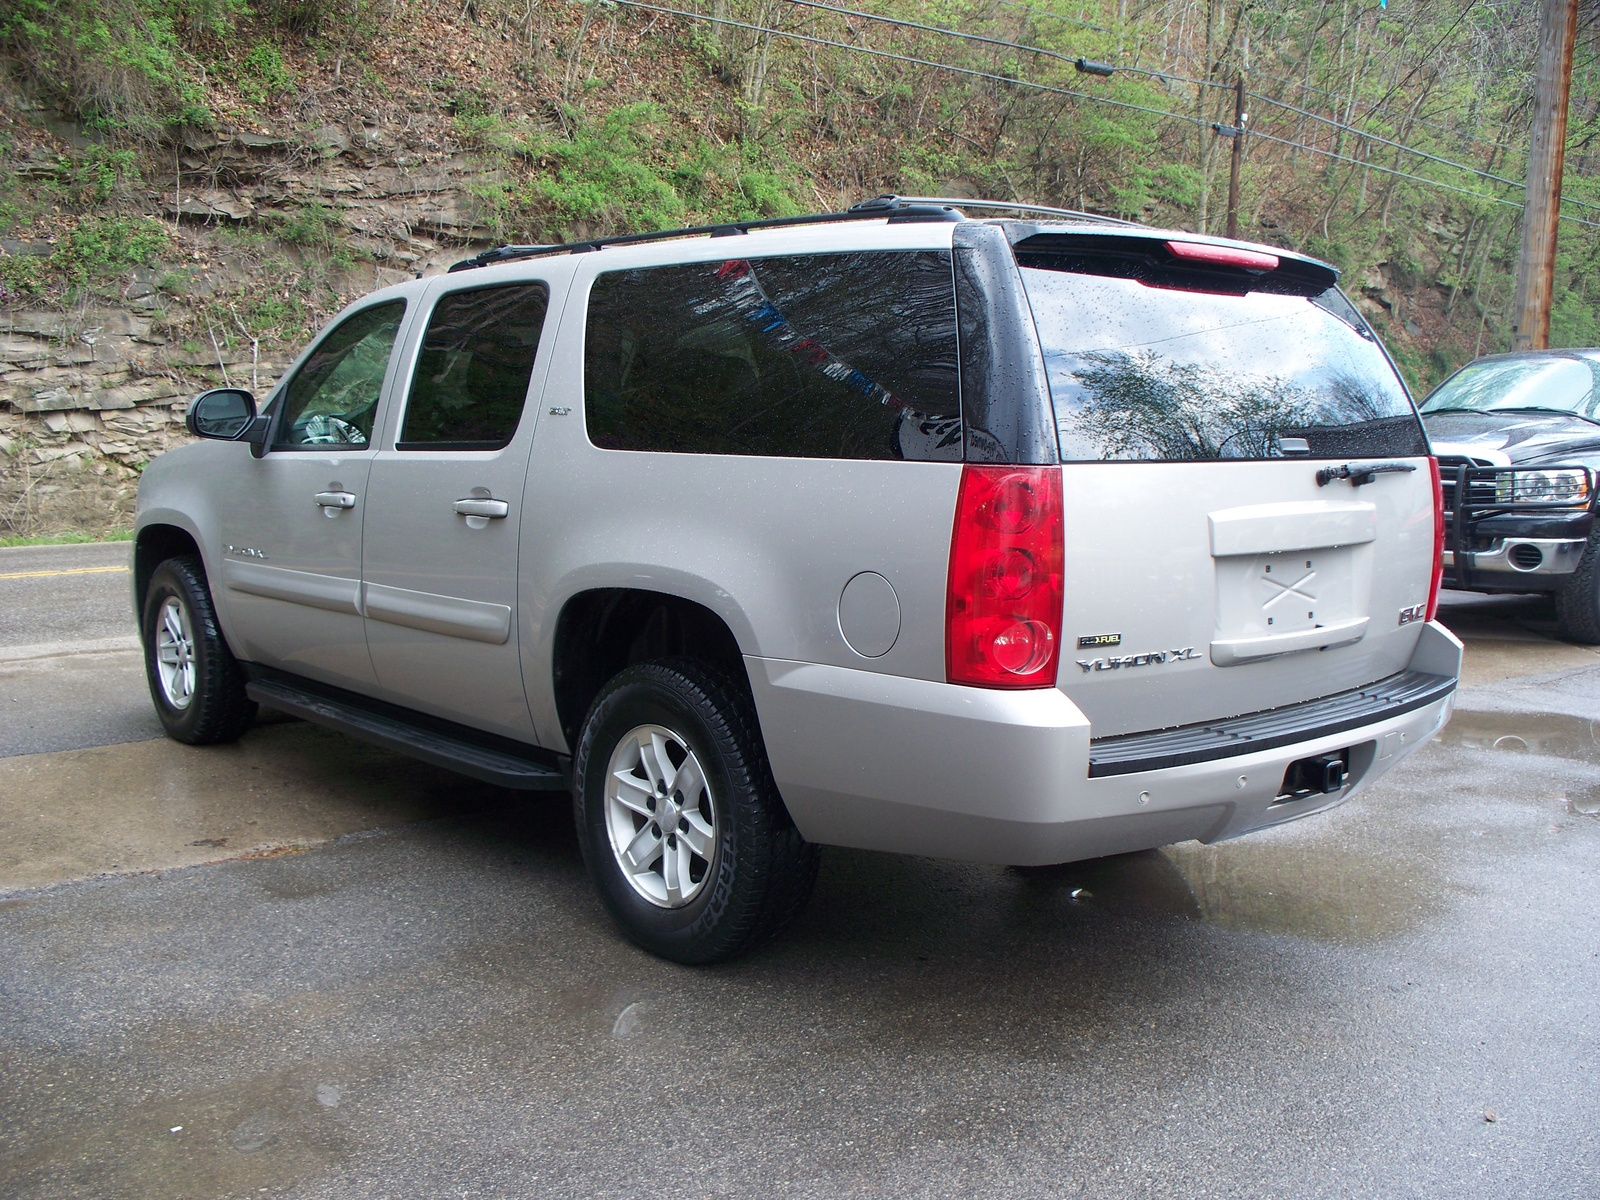 2007 GMC Yukon photo - 2